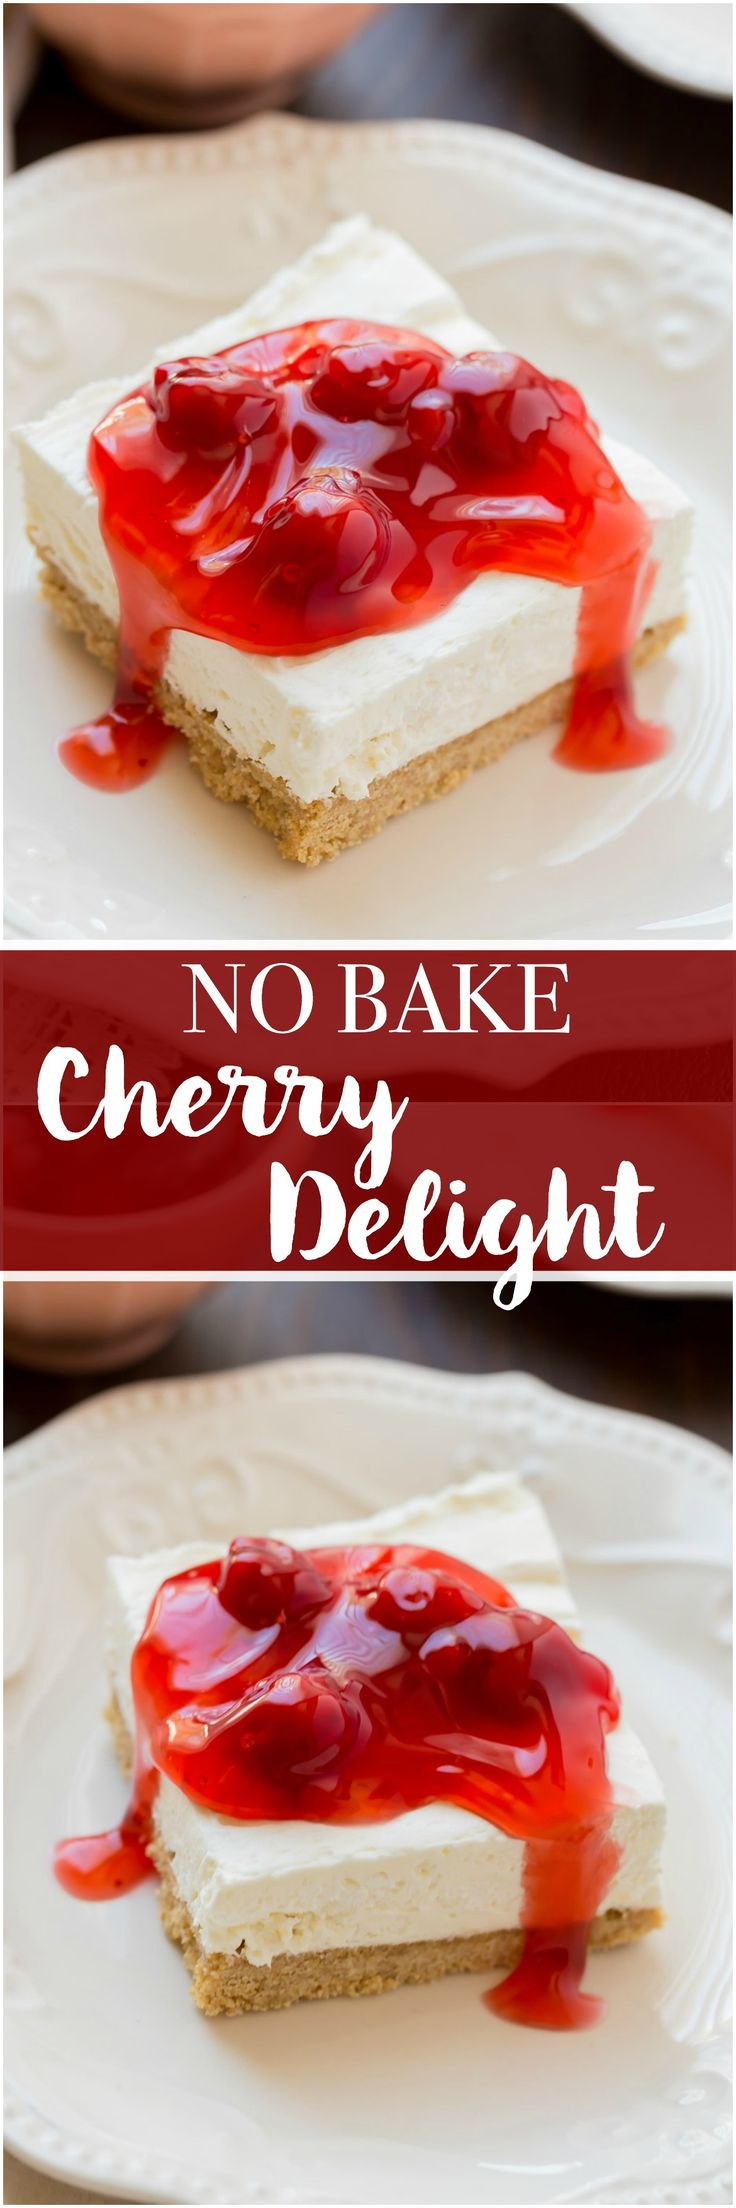 No Bake Cherry Delight is a family favorite. This dessert is a scrumptious no bake dessert and perfect for those hot summer days! #recipes #nobake #cherries #cheesecake #creamcheese